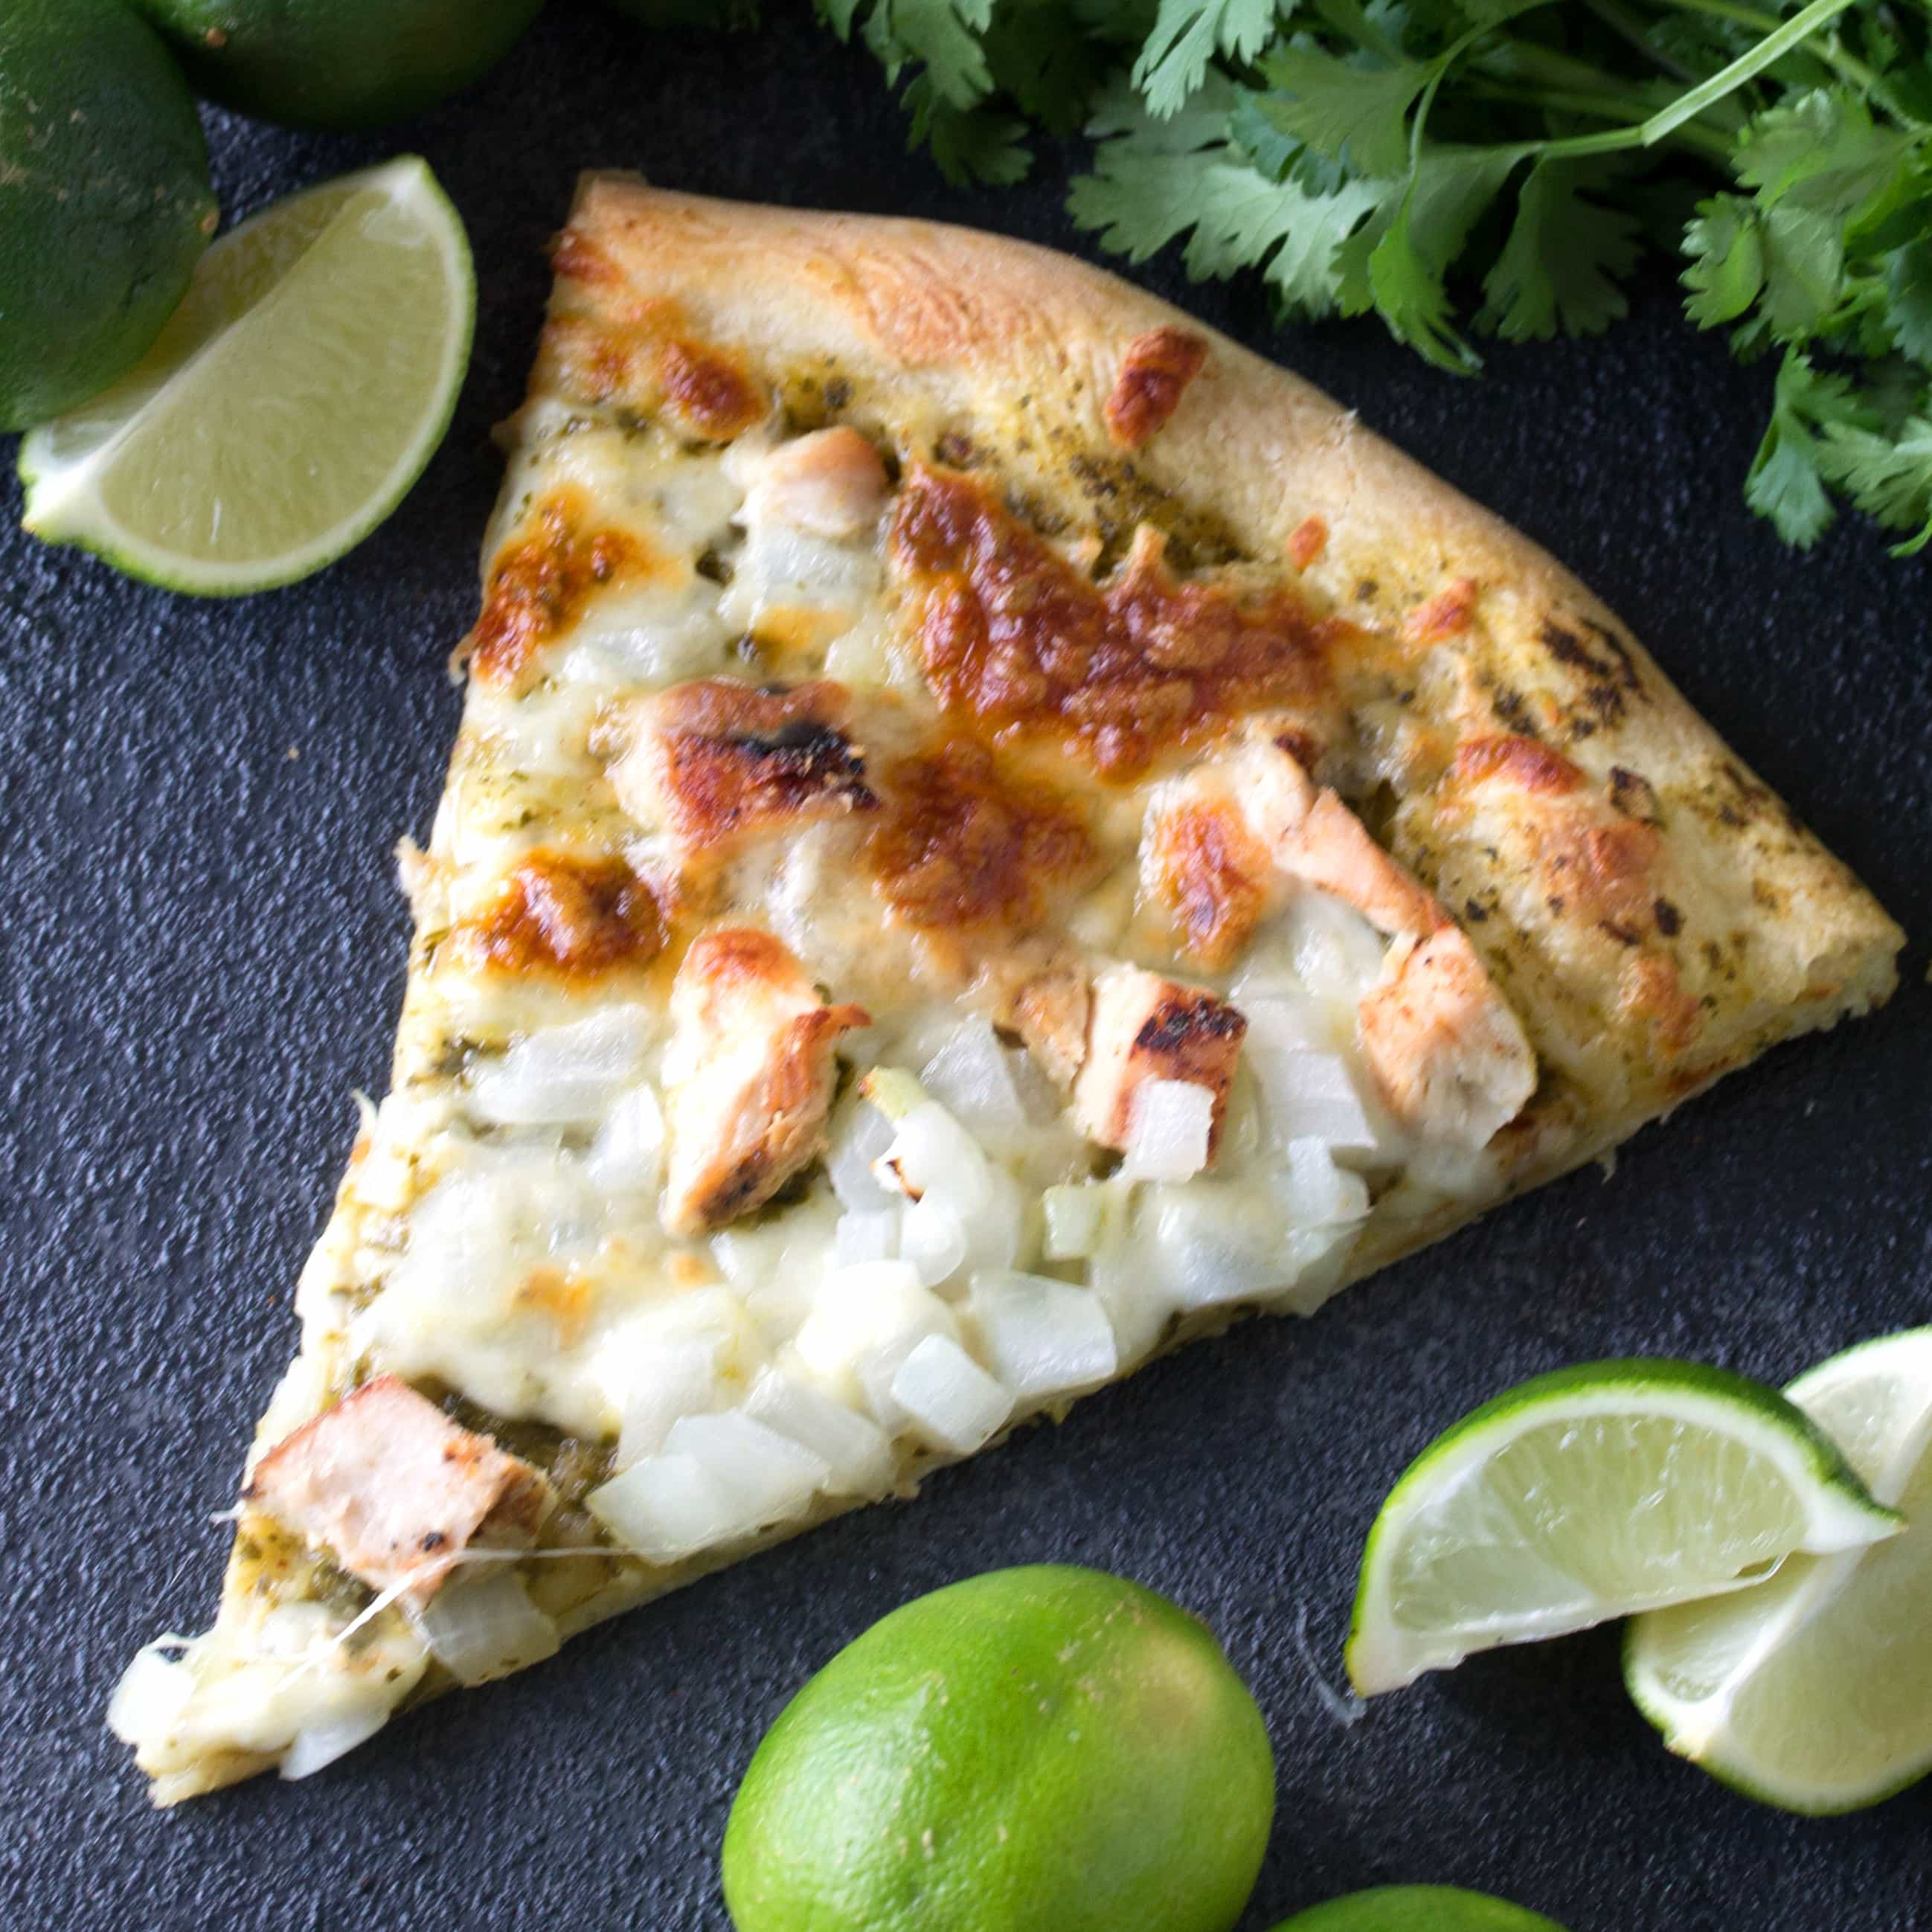 Cilantro Lime Chicken Pizza will have all cilantro lime lovers falling in love with this simple, but tasty pizza combination.